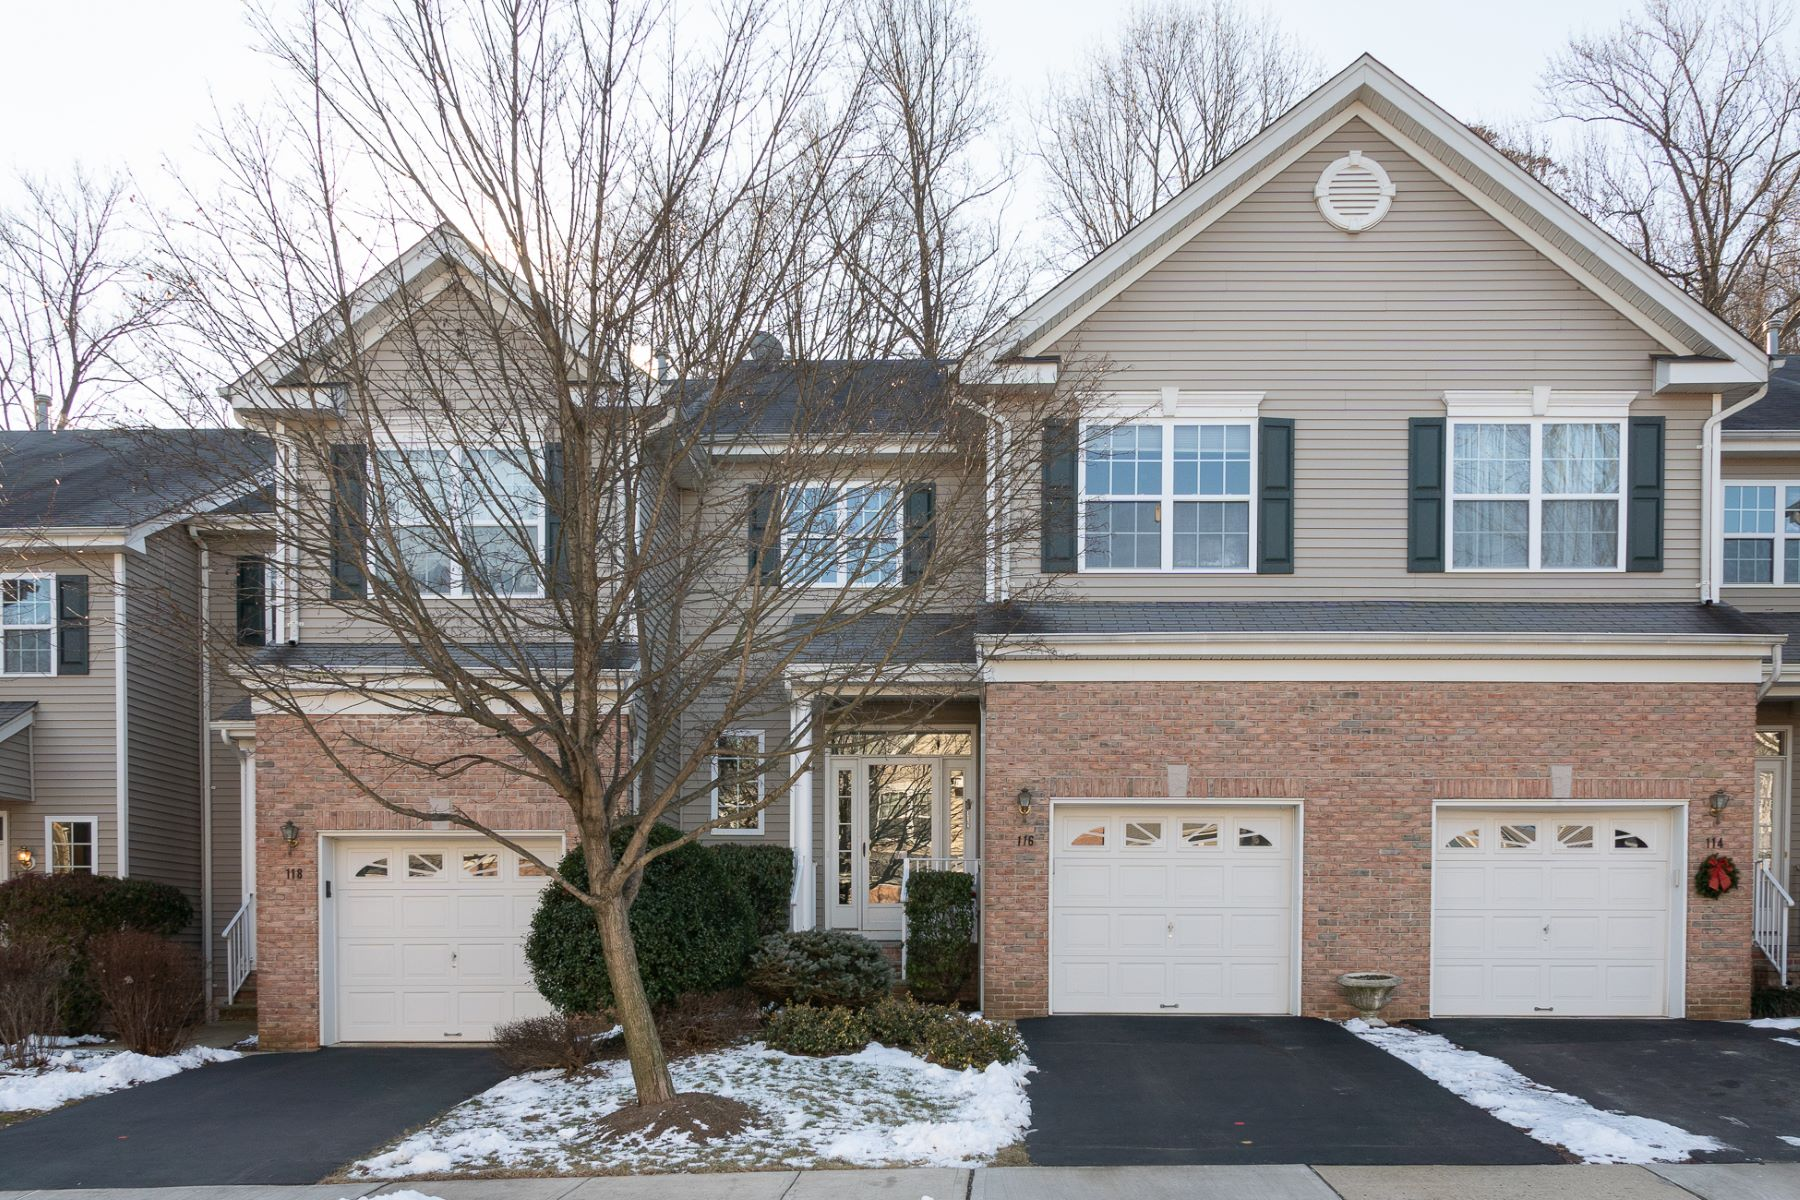 Single Family Homes for Sale at Downsizing is A Dream In This Montgomery Hills Townhouse 116 Hoover Avenue, Princeton, New Jersey 08540 United States